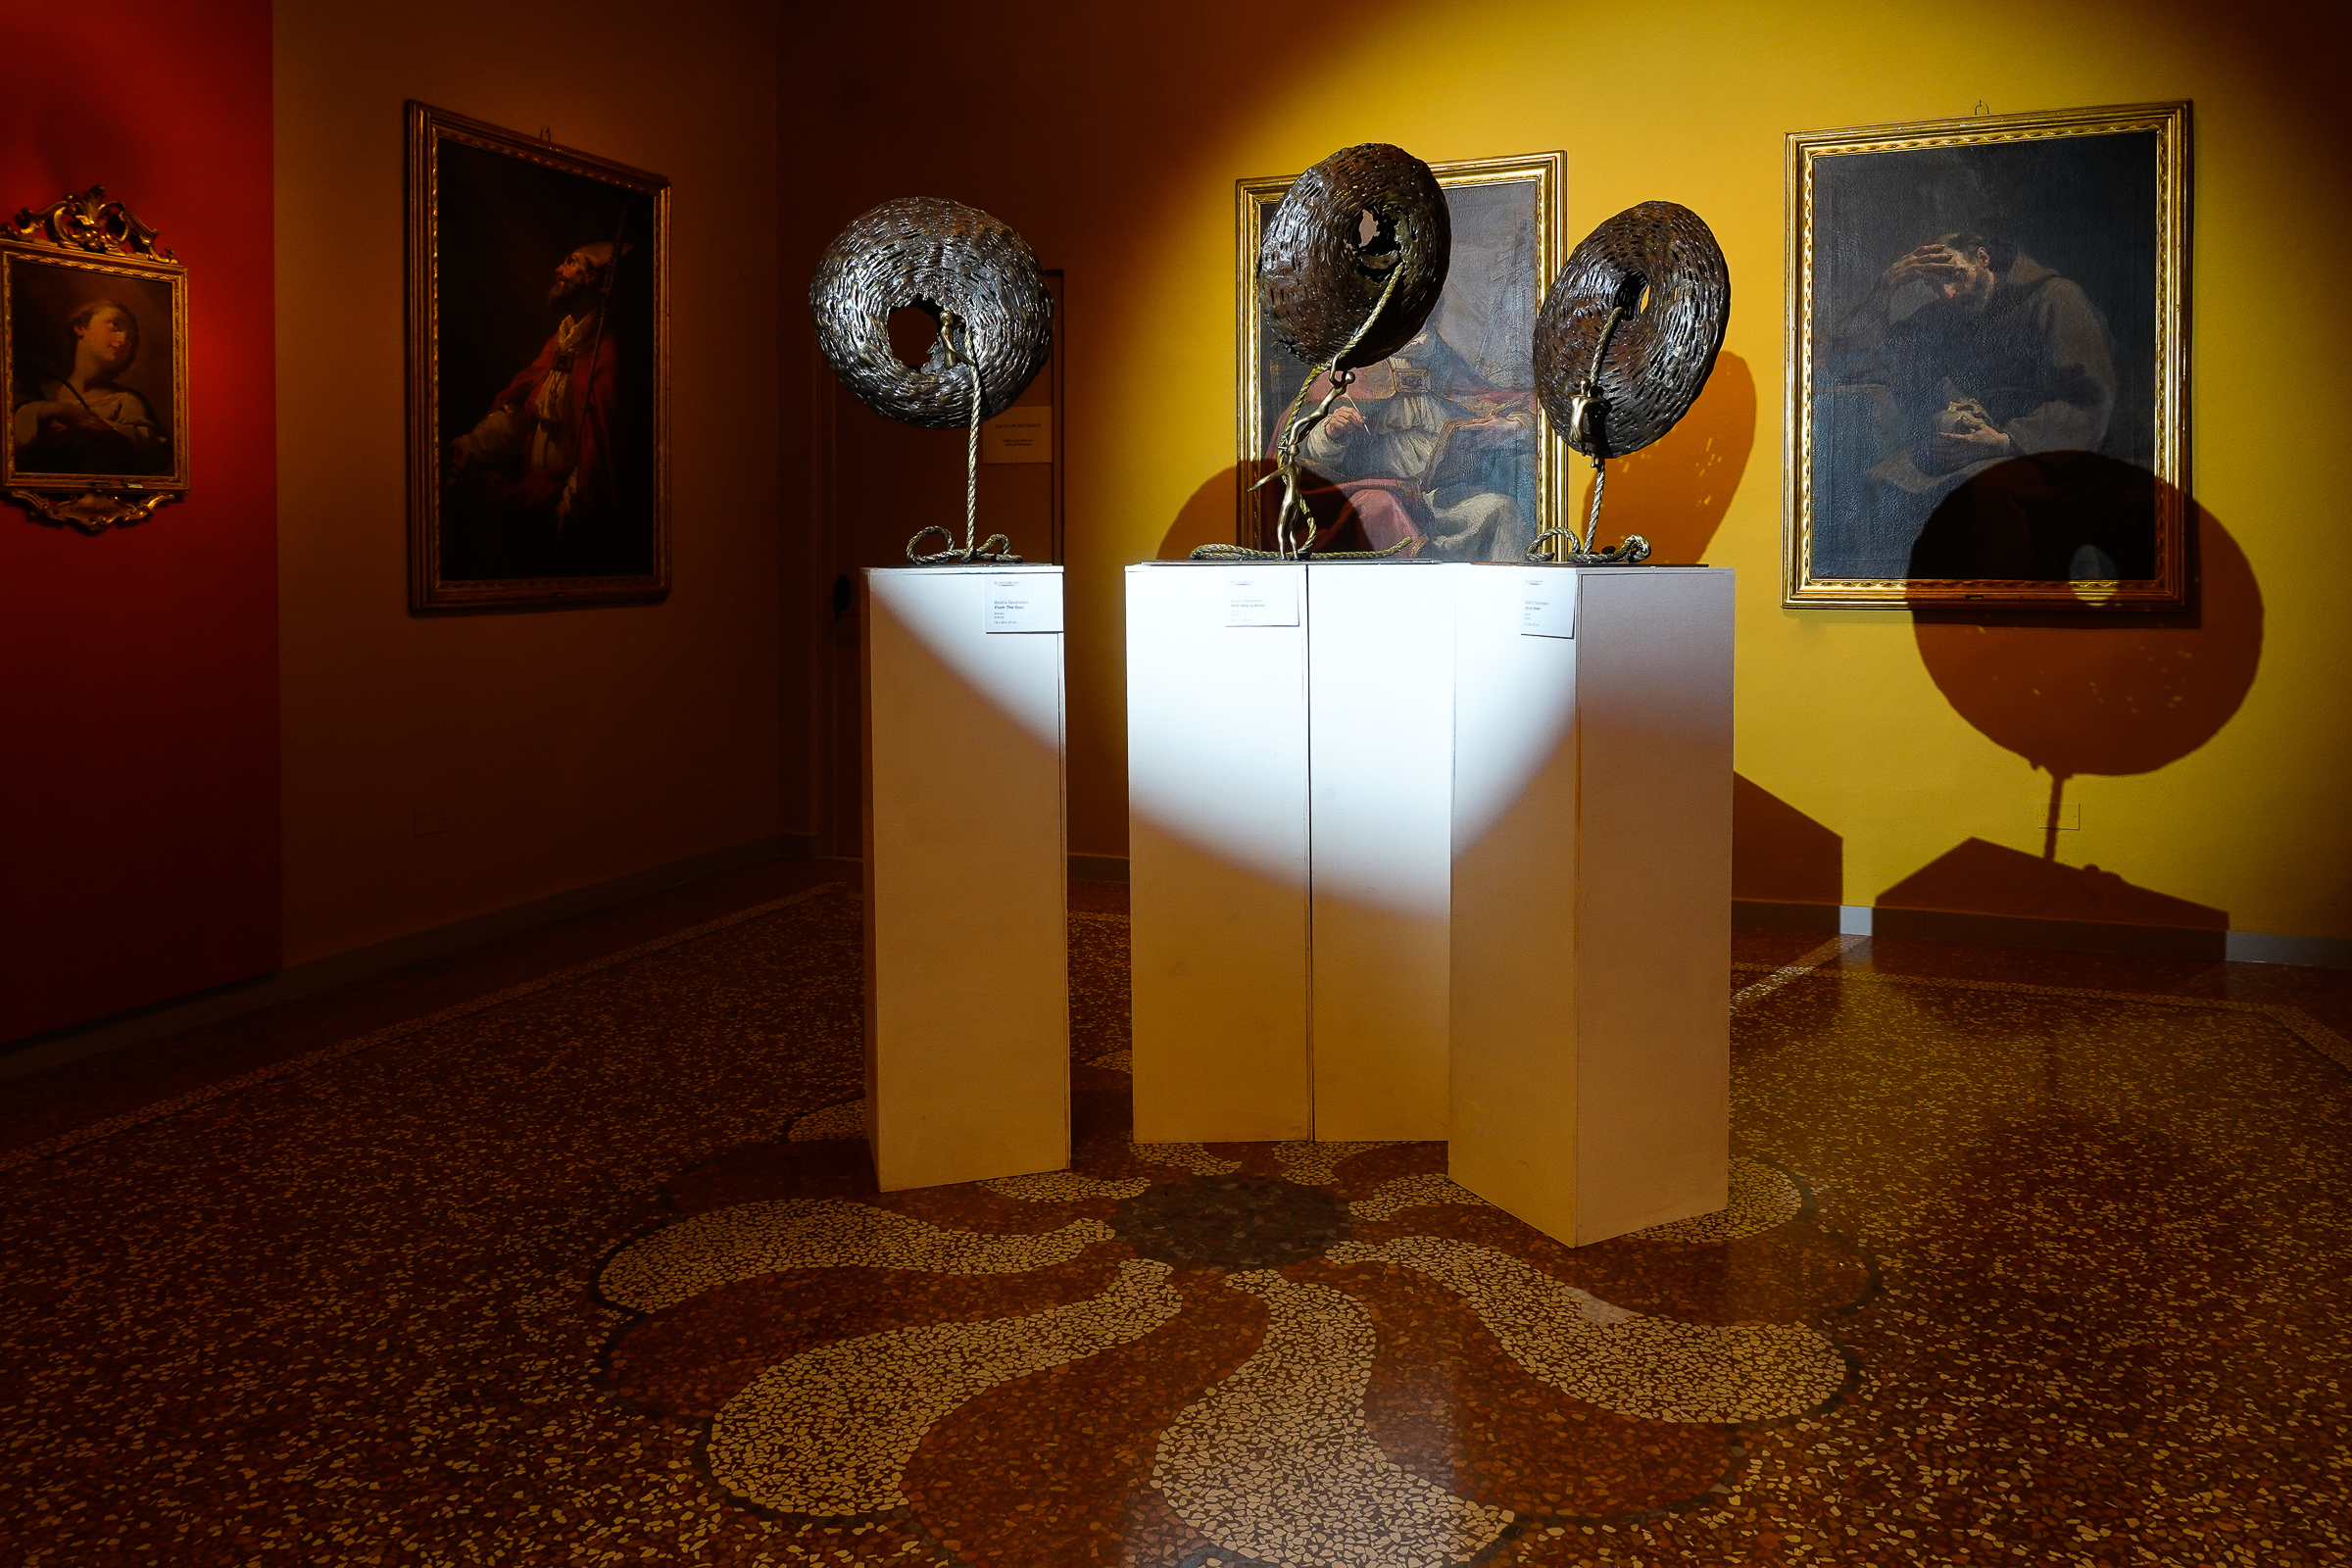 From-the-soul-With-Help-is-Better-Up-or-down-museum-la-quadreria-bologna-Italy-Beatriz-Gerenstein-1